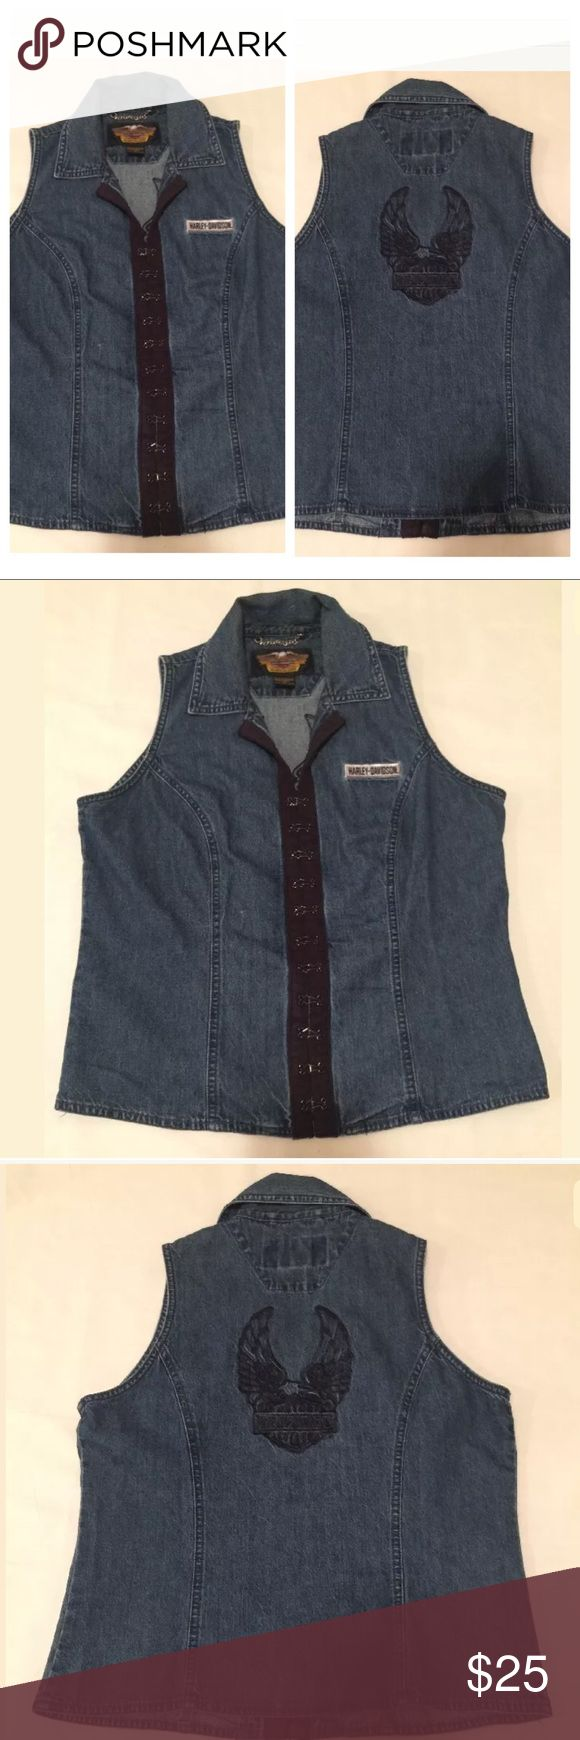 """Harley-Davidson Motorcycles Denim Women's Vest Top Description: Harley-Davidson Motorcycles Denim Embroidered Women's Vest Top.  Size: Medium (M)  Condition: Item is in excellent pre-owned condition. No rips, holes, or stains.  Measurements:   •Chest (Armpit-Armpit): 18.5""""  •Length (Bottom of Collar-Bottom): 20""""  •Sleeve (Shoulder Seam-Bottom of Cuff): 0"""" Harley-Davidson Tops Muscle Tees"""